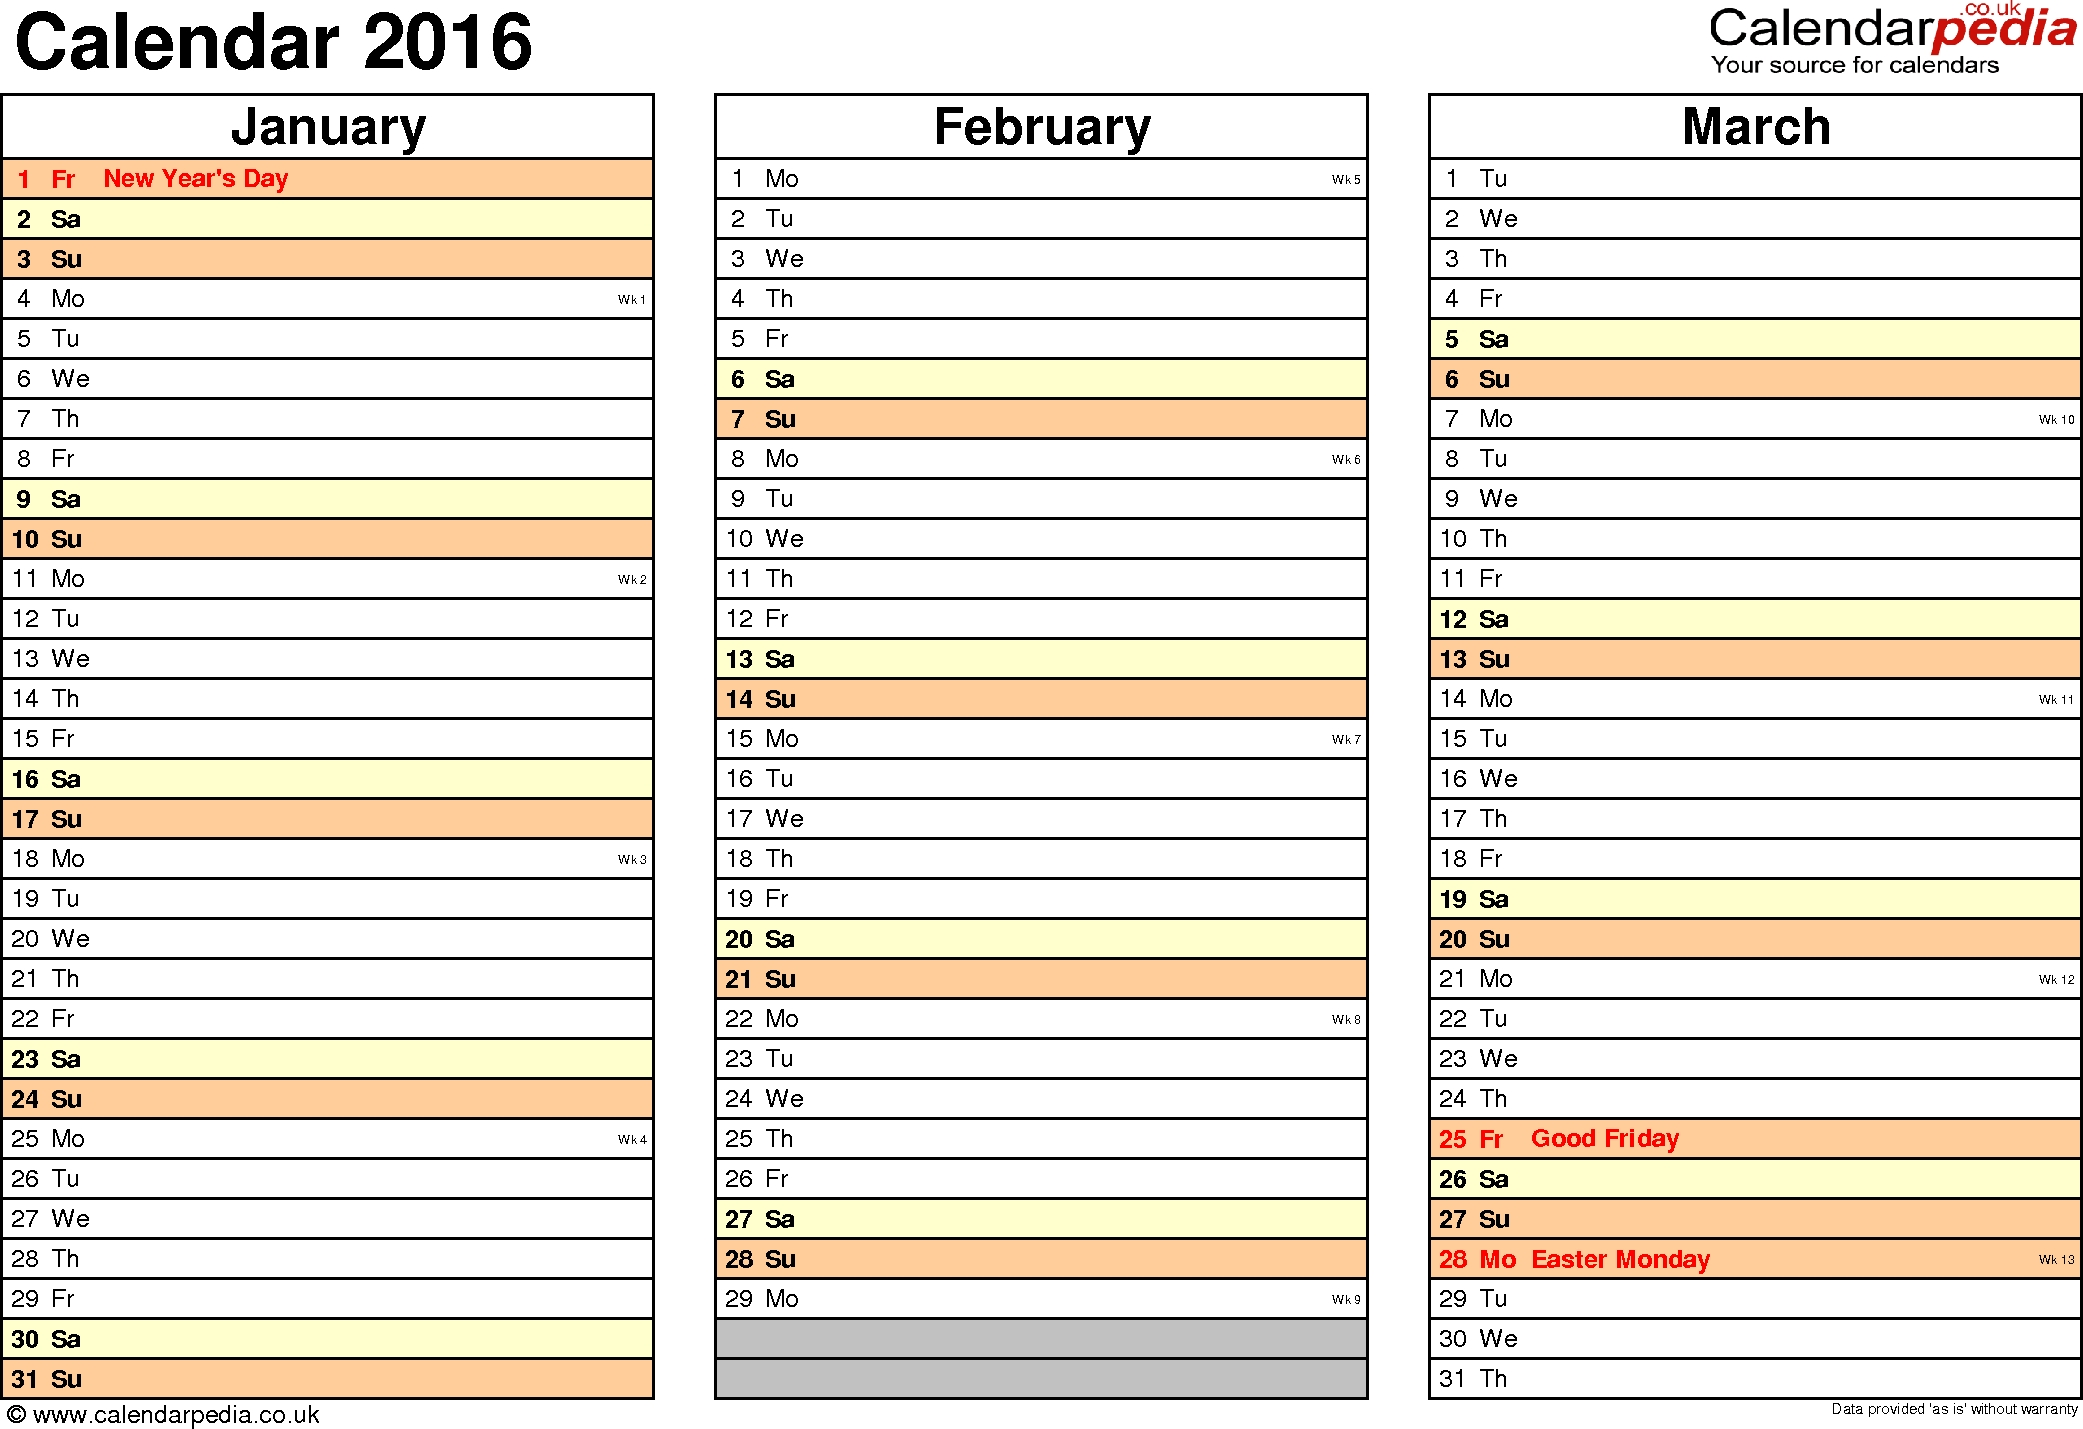 Calendar 2016 (Uk) - 16 Free Printable Word Templates 3 Month Calendar Uk